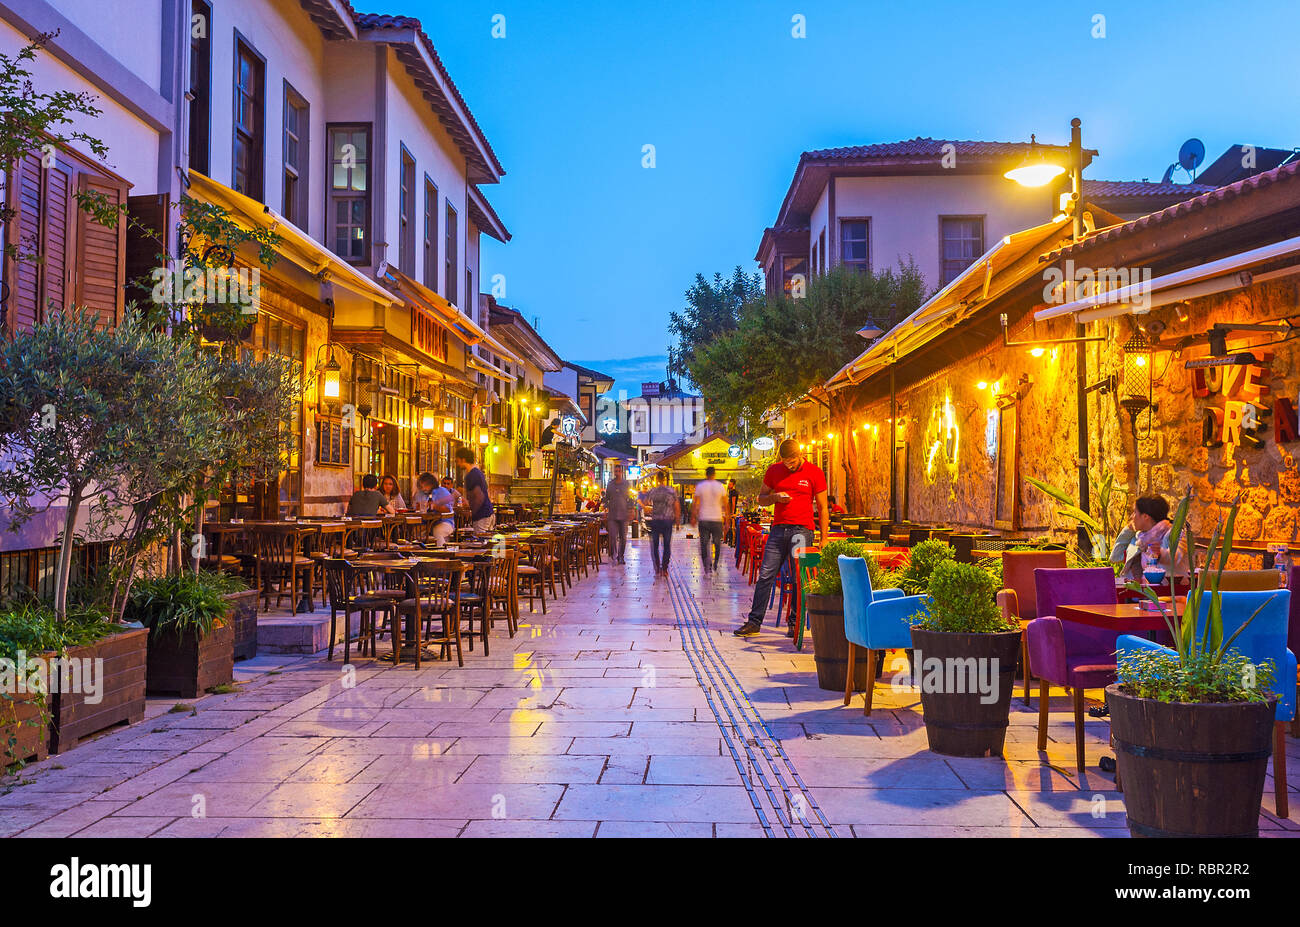 ANTALYA, TURKEY - MAY 9, 2017: The old town boasts different restaurants and cafes, occupying historical townhouses and offering nice time spending on - Stock Image